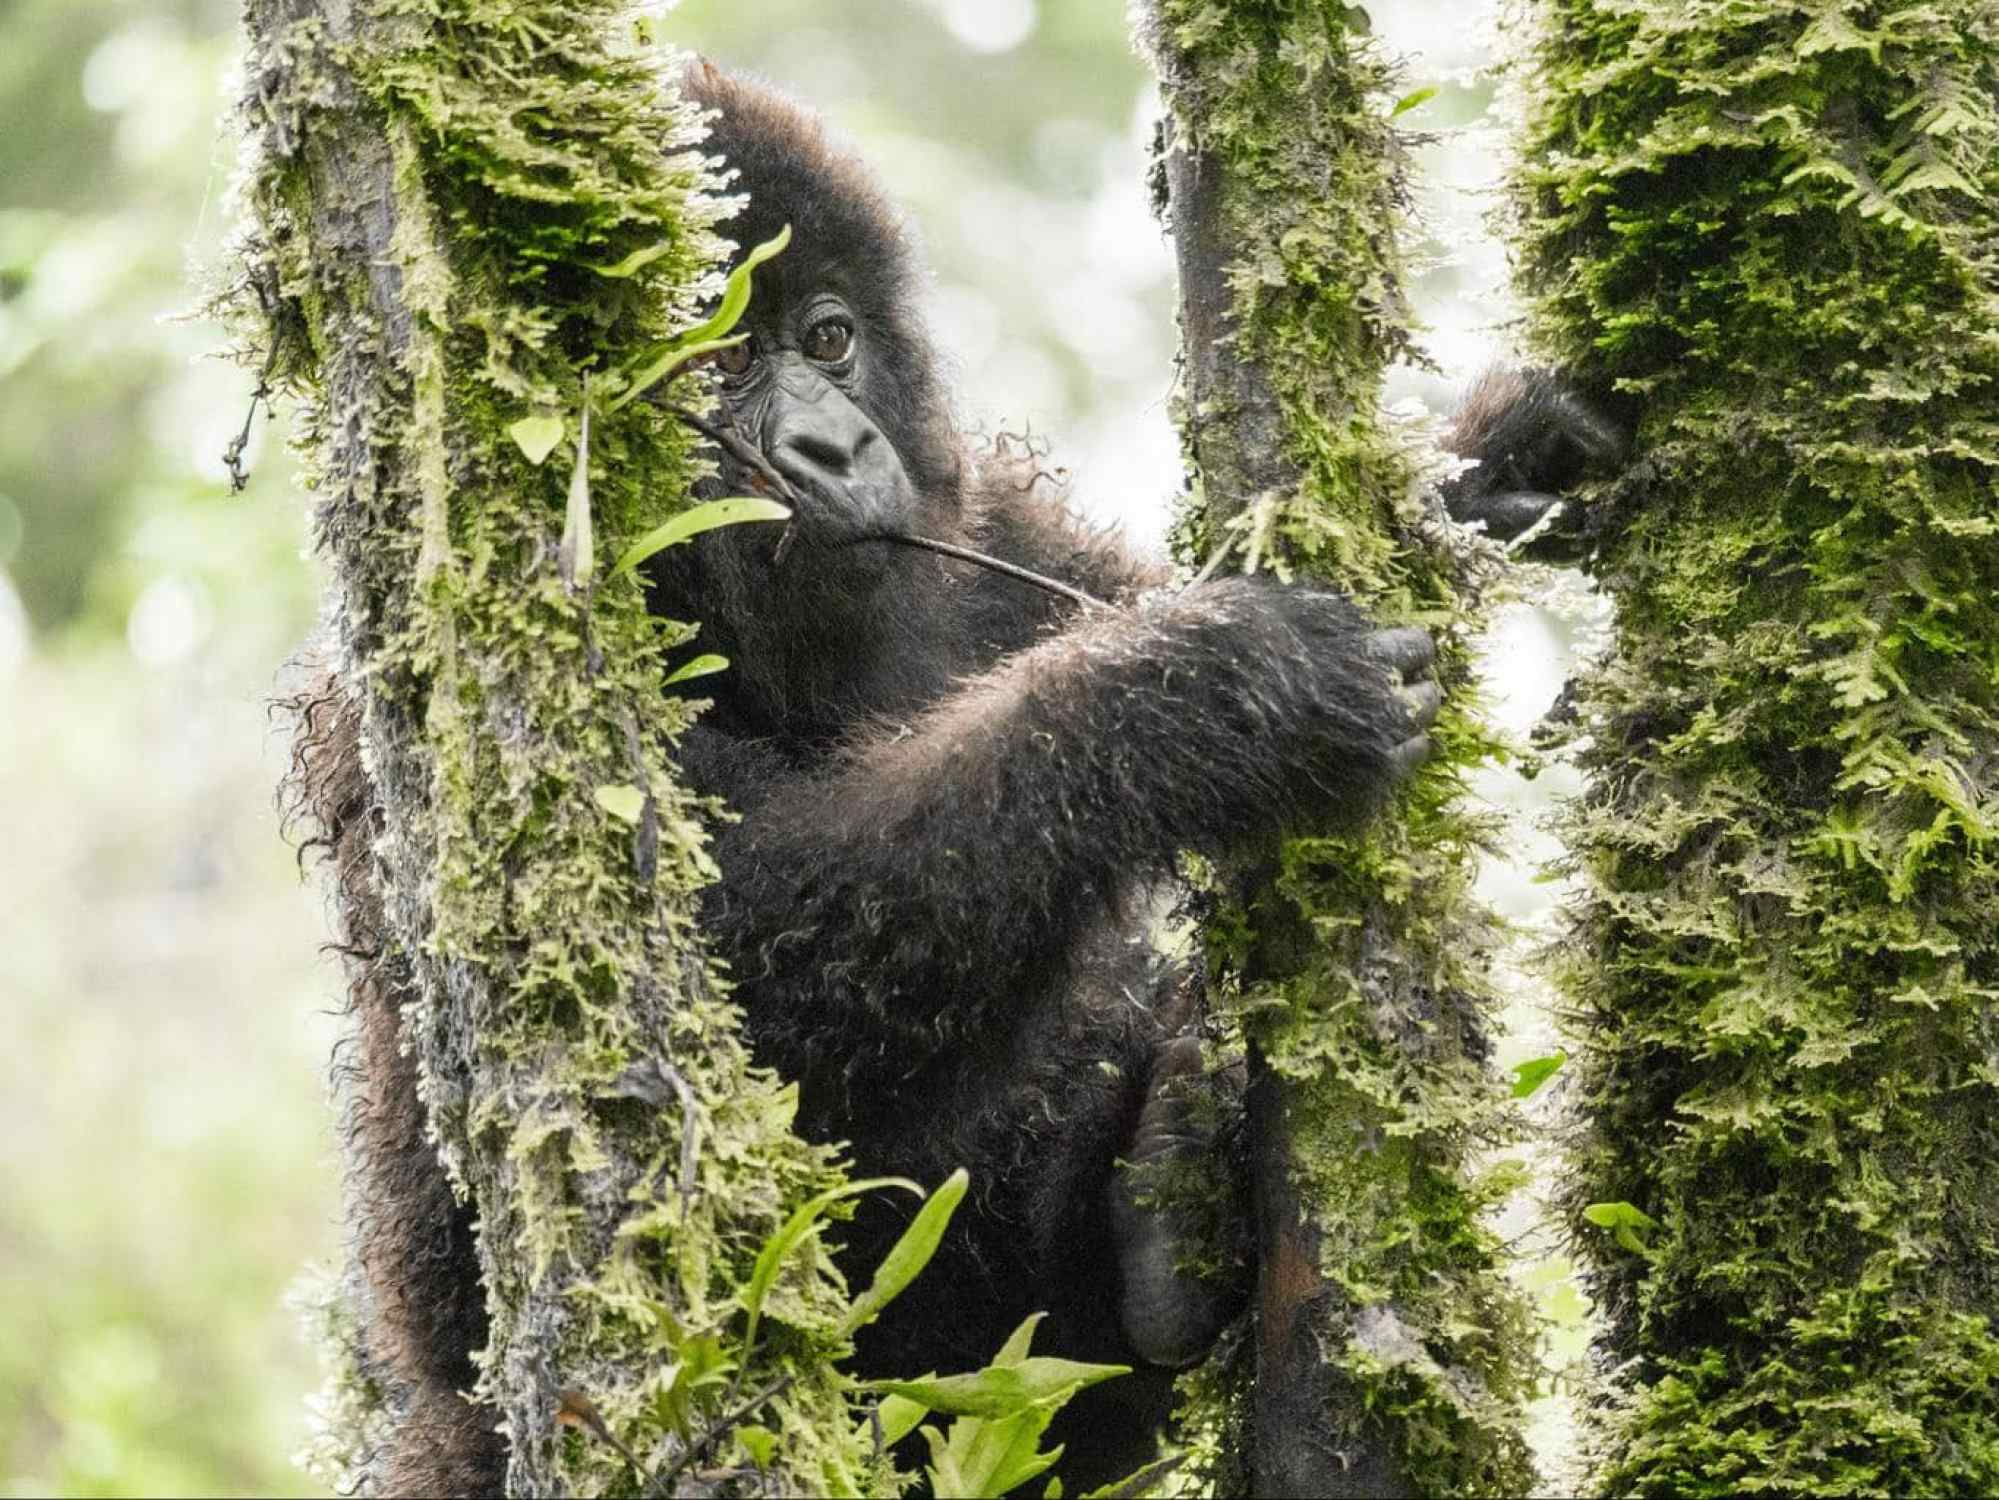 A young gorilla trying to climb the tree